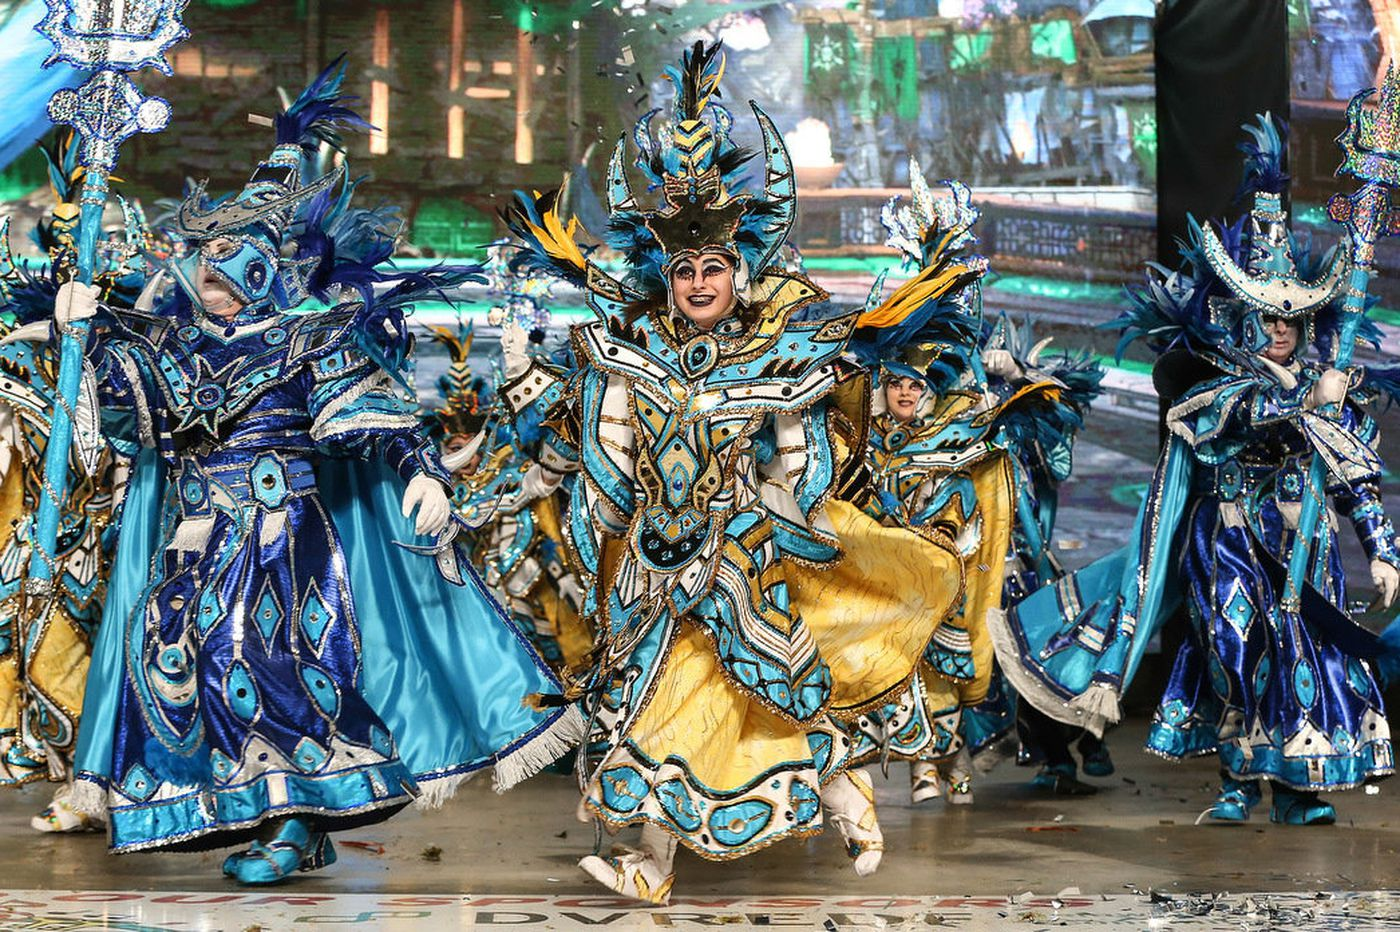 Mummers Parade 2019: Your ultimate guide